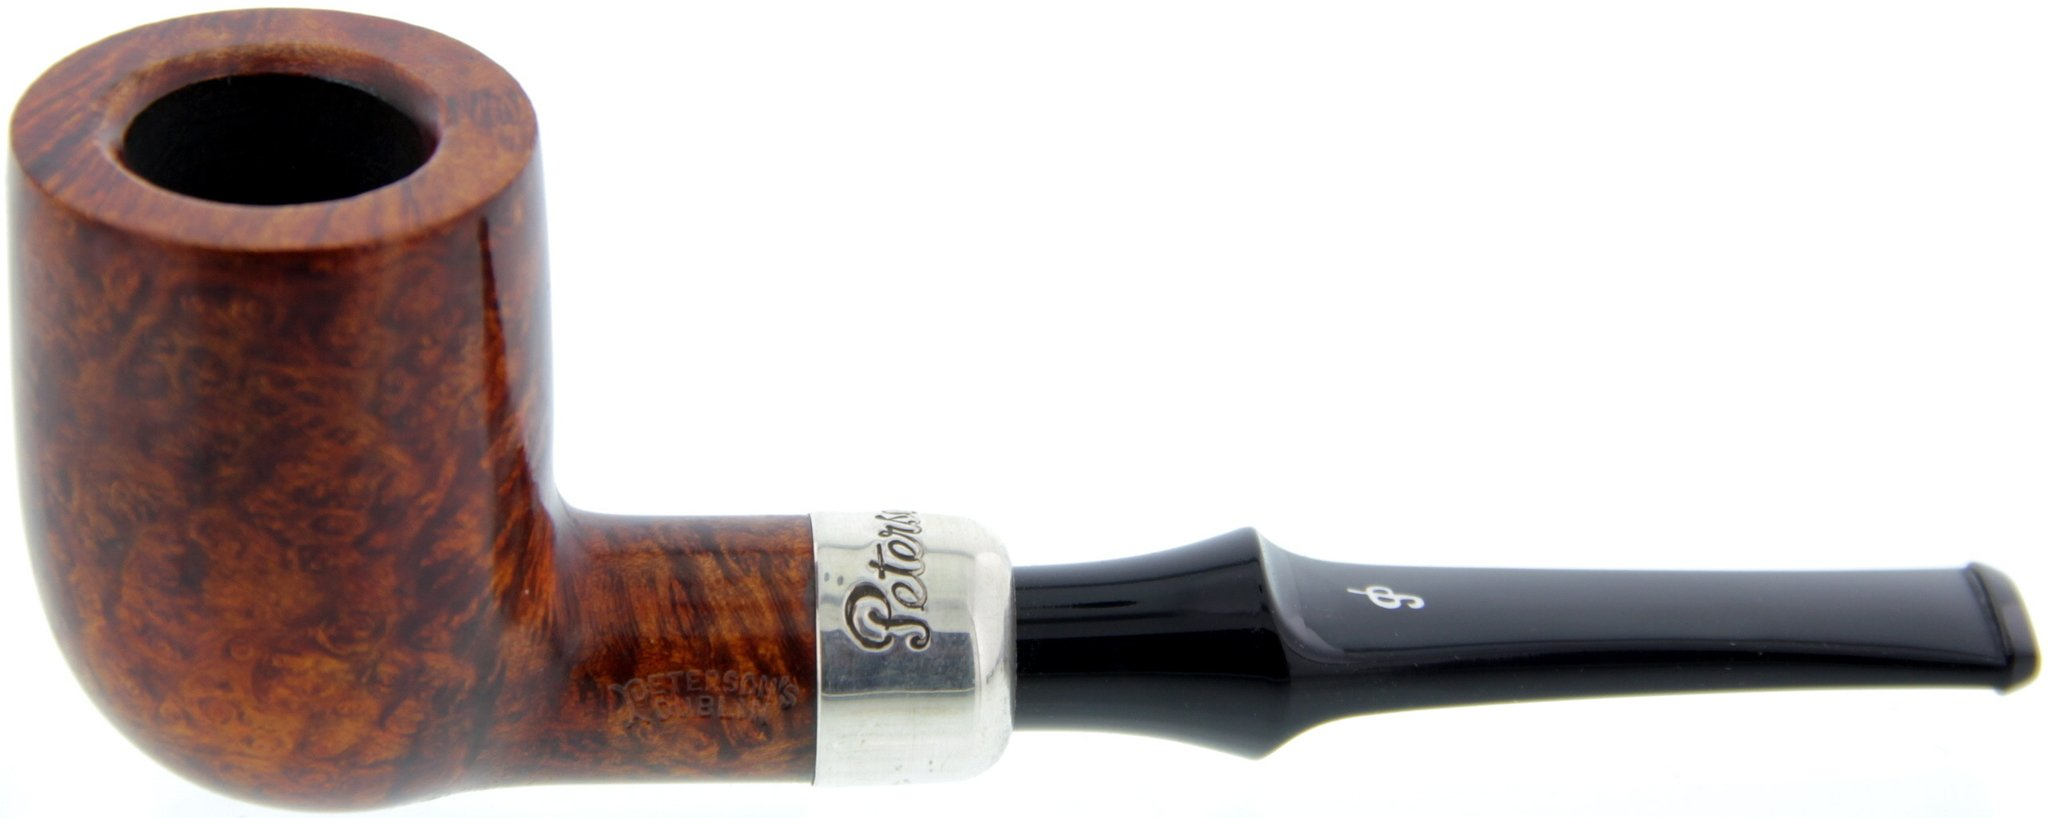 Peterson Pipe of the Year 2014 Smooth braun